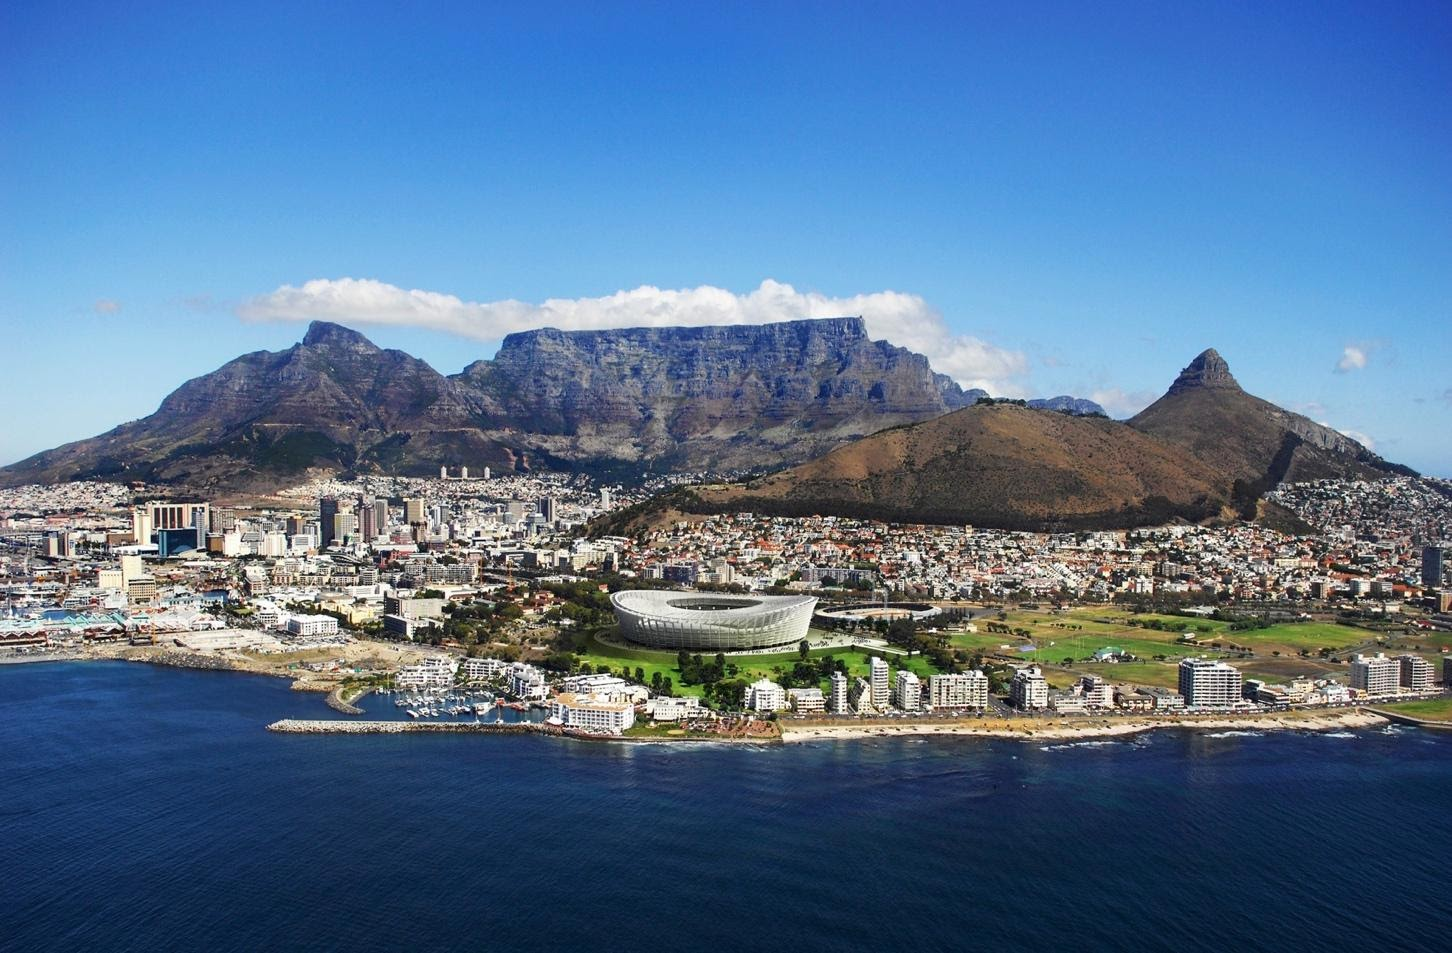 The Iconic Table Mountain, with breathtaking views overlooking the mother city.